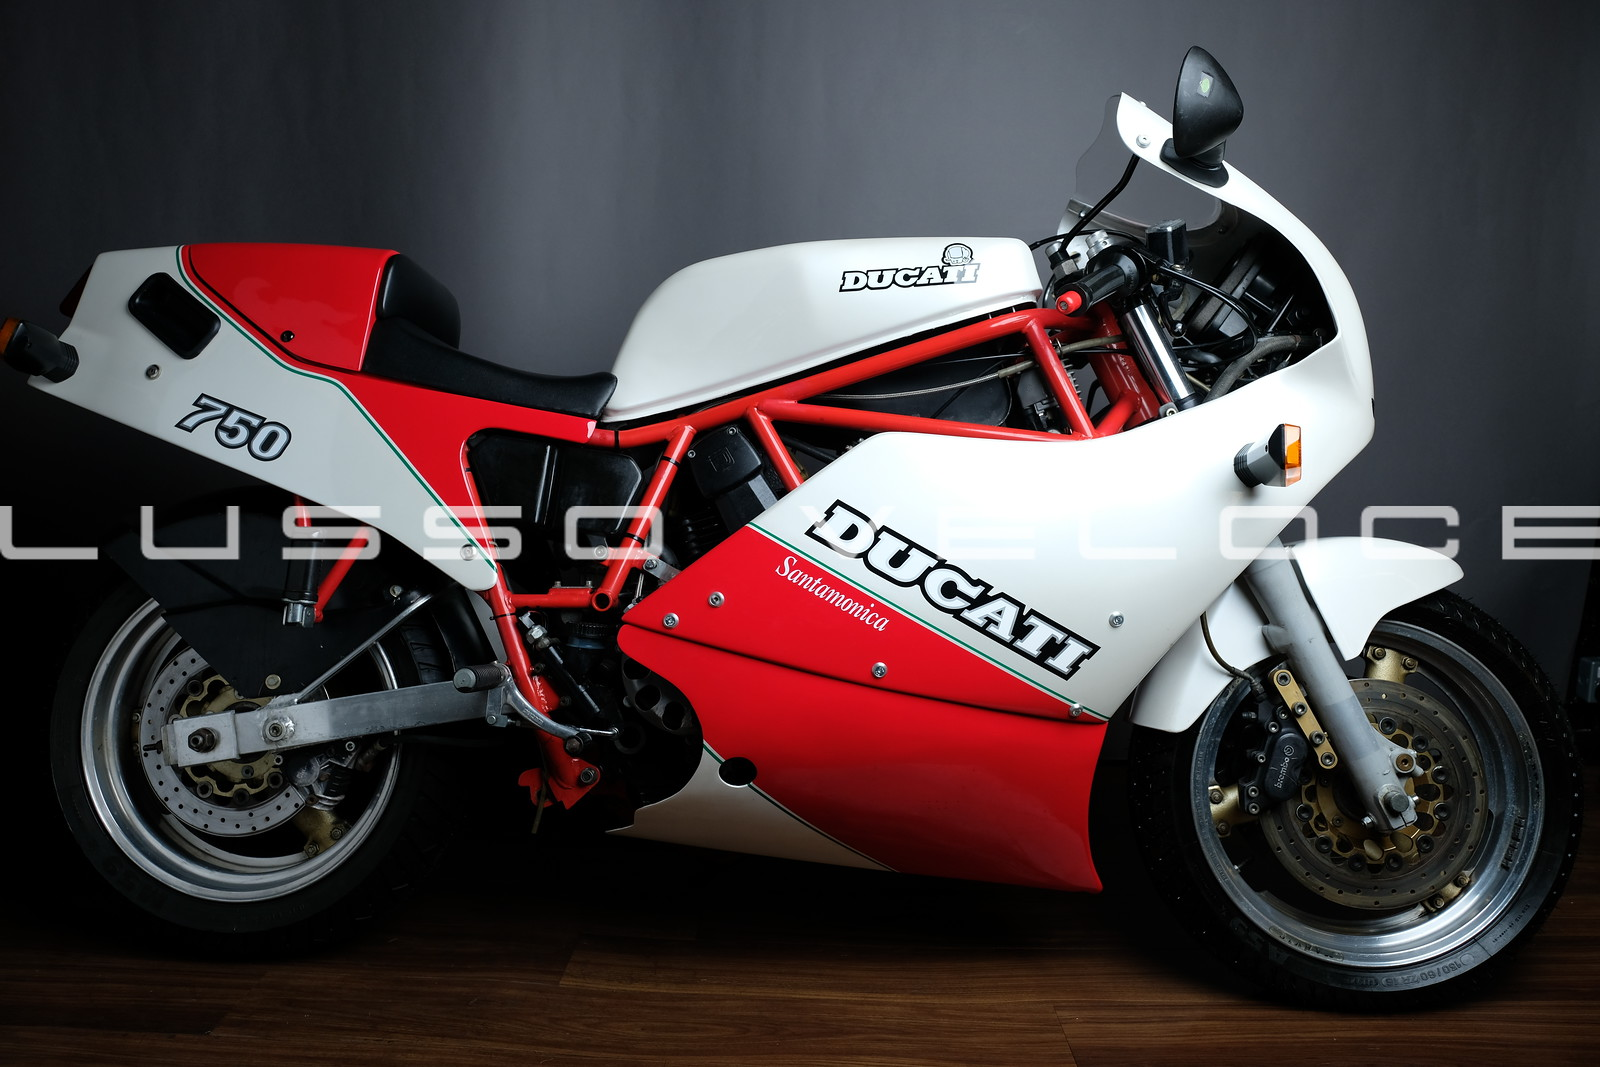 A chance to campare a 750 F1 Ducati with the special edition Santamonica